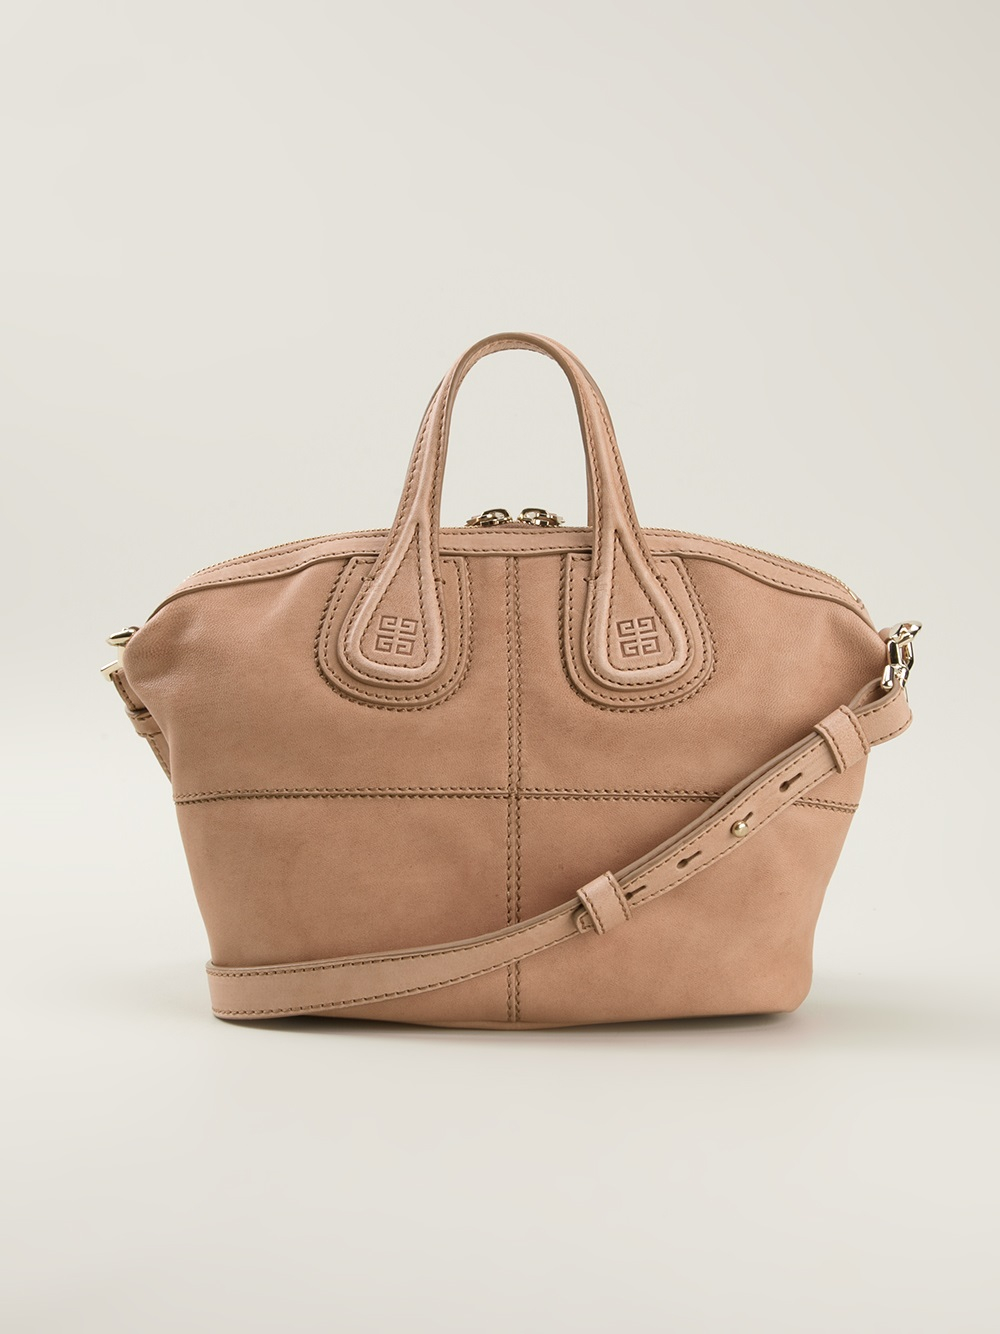 cc4660d7ae49 Gallery. Previously sold at  Farfetch · Women s Givenchy Nightingale ...